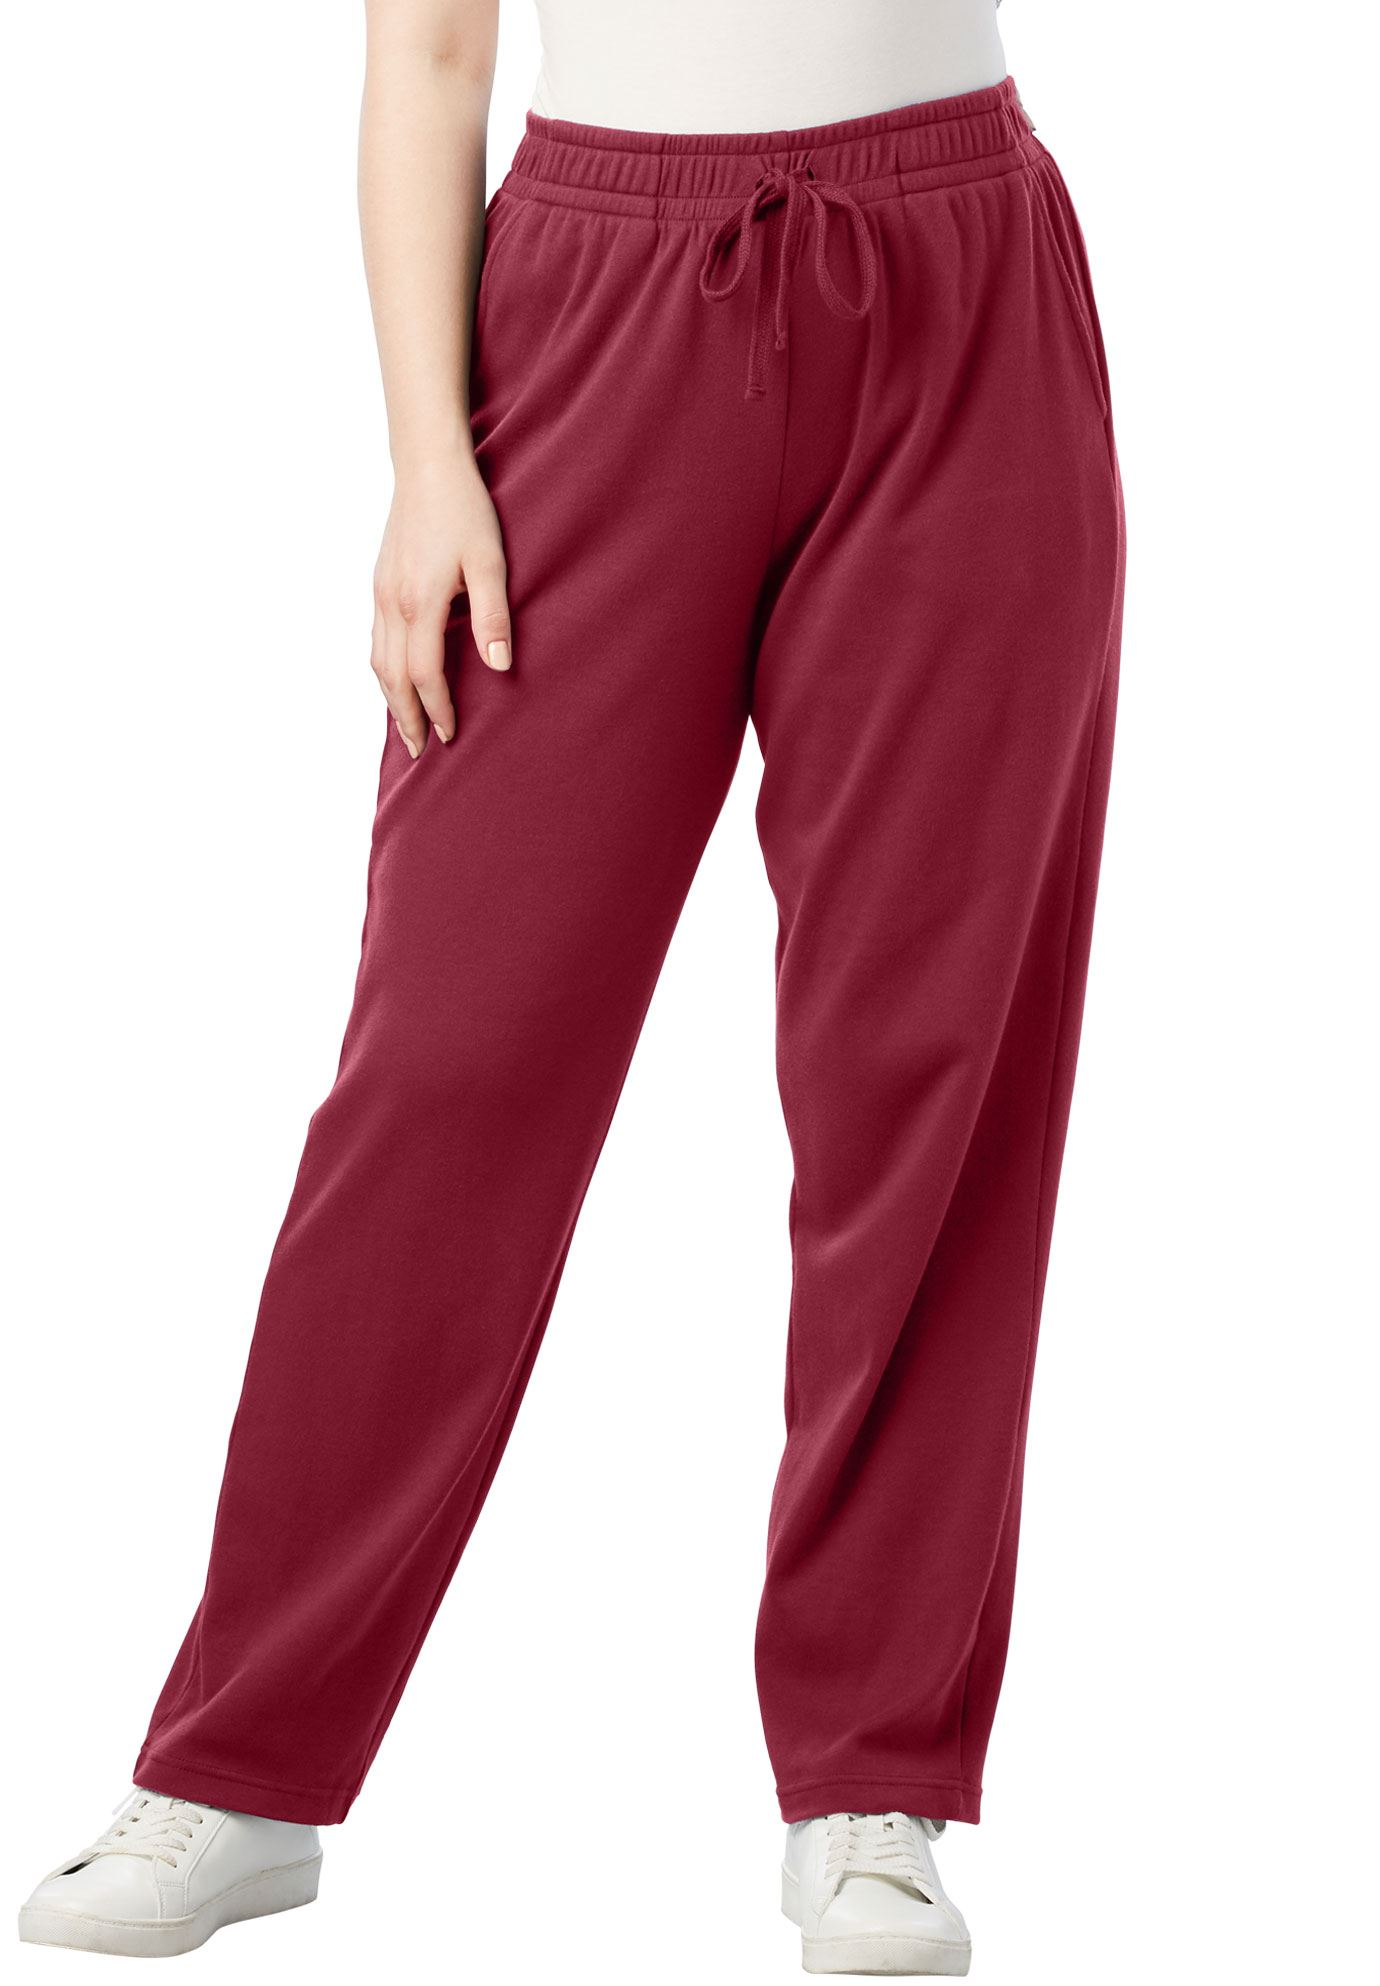 Plus Size Straight Leg Soft Knit Pant